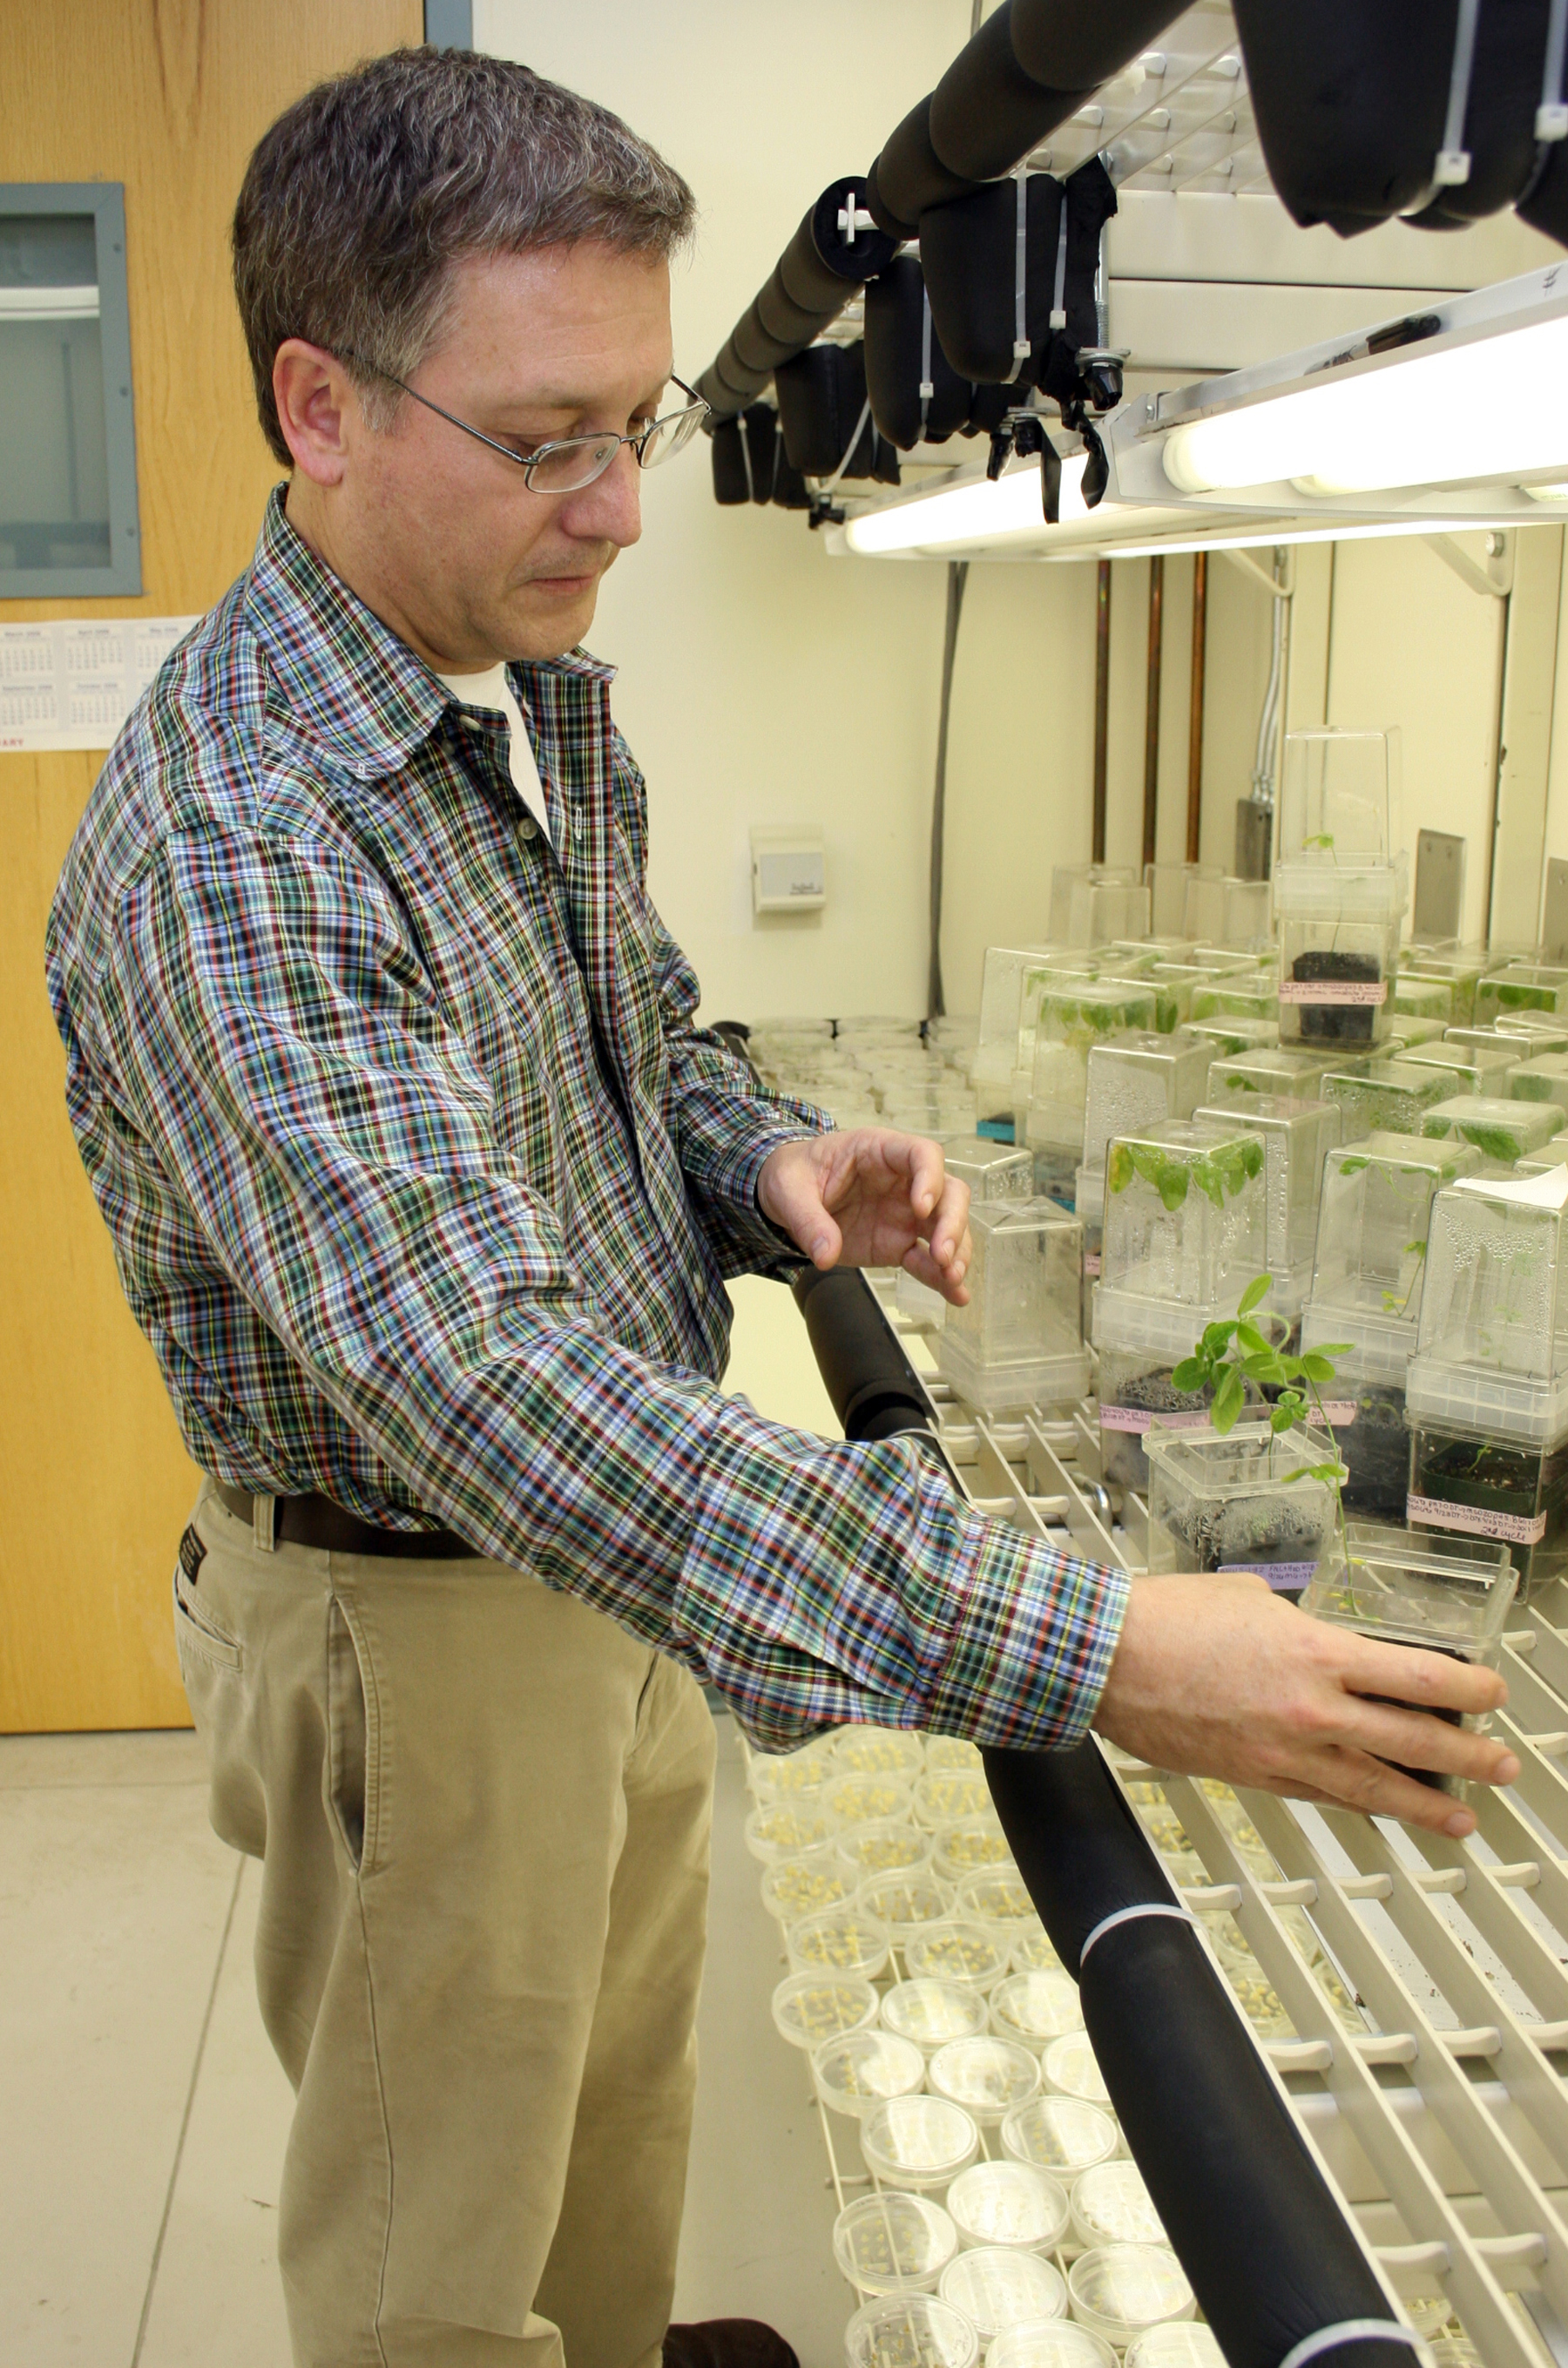 Soybean plants flourish under the grow lights in Wayne Parrott's lab. Parrott is a crop and soil sciences professor at the University of Georgia College of Agricultural and Environmental Sciences.